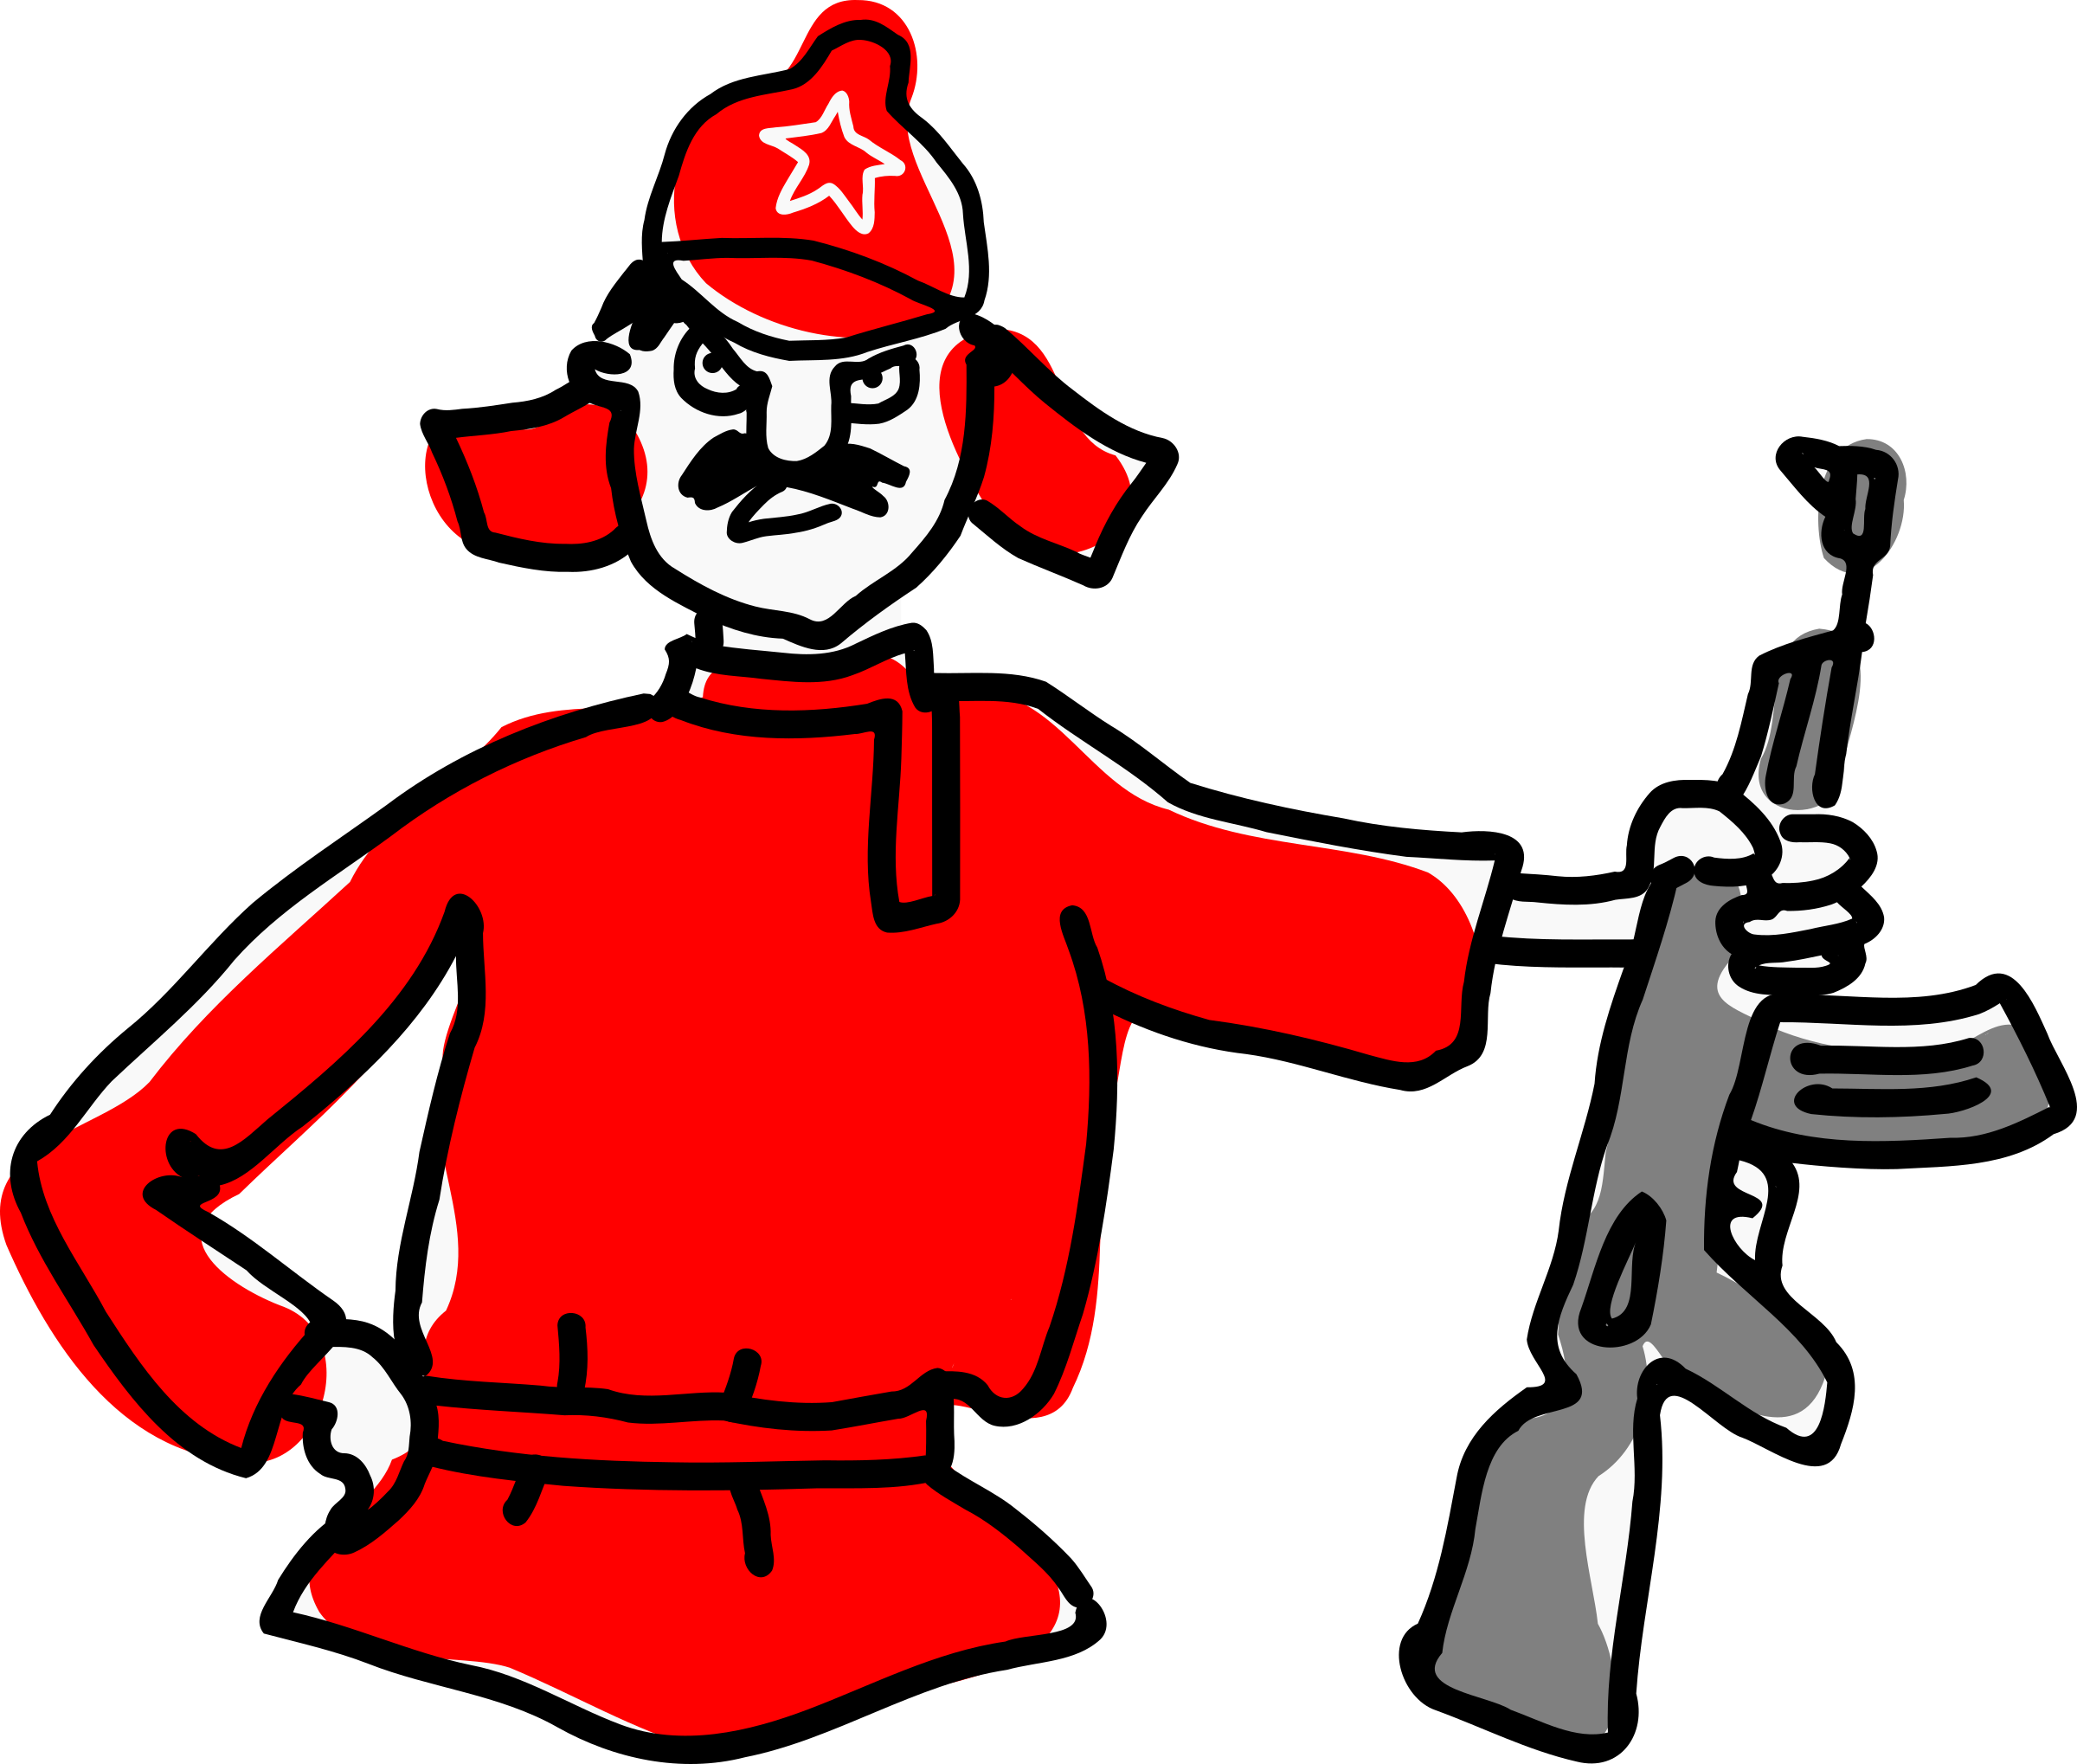 Army soldier big image. Clipart gun red